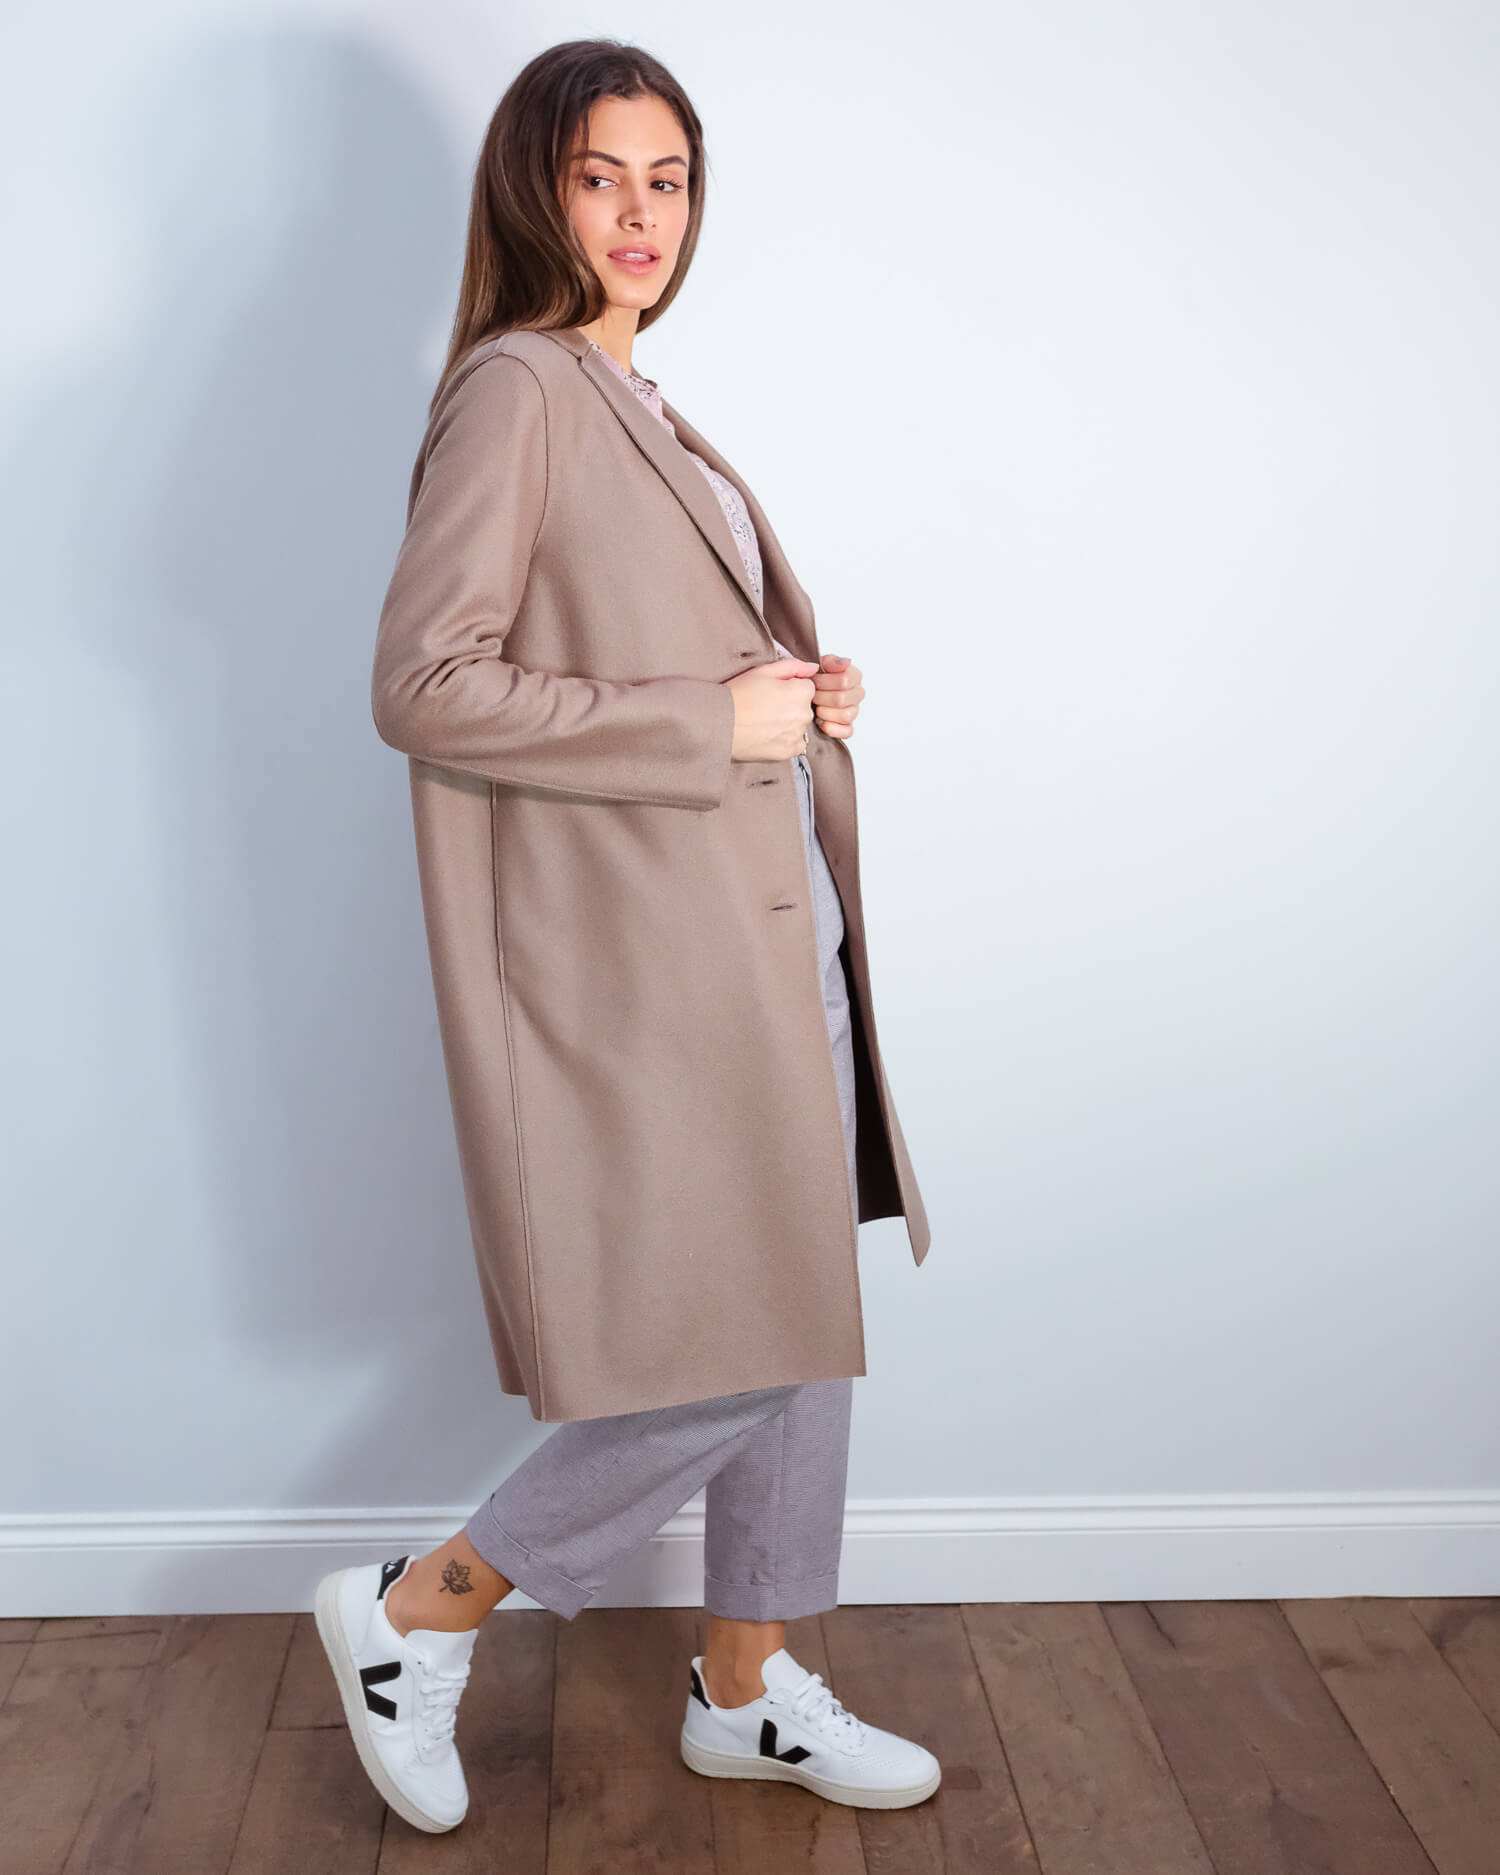 HWL Pressed wool overcoat in taupe